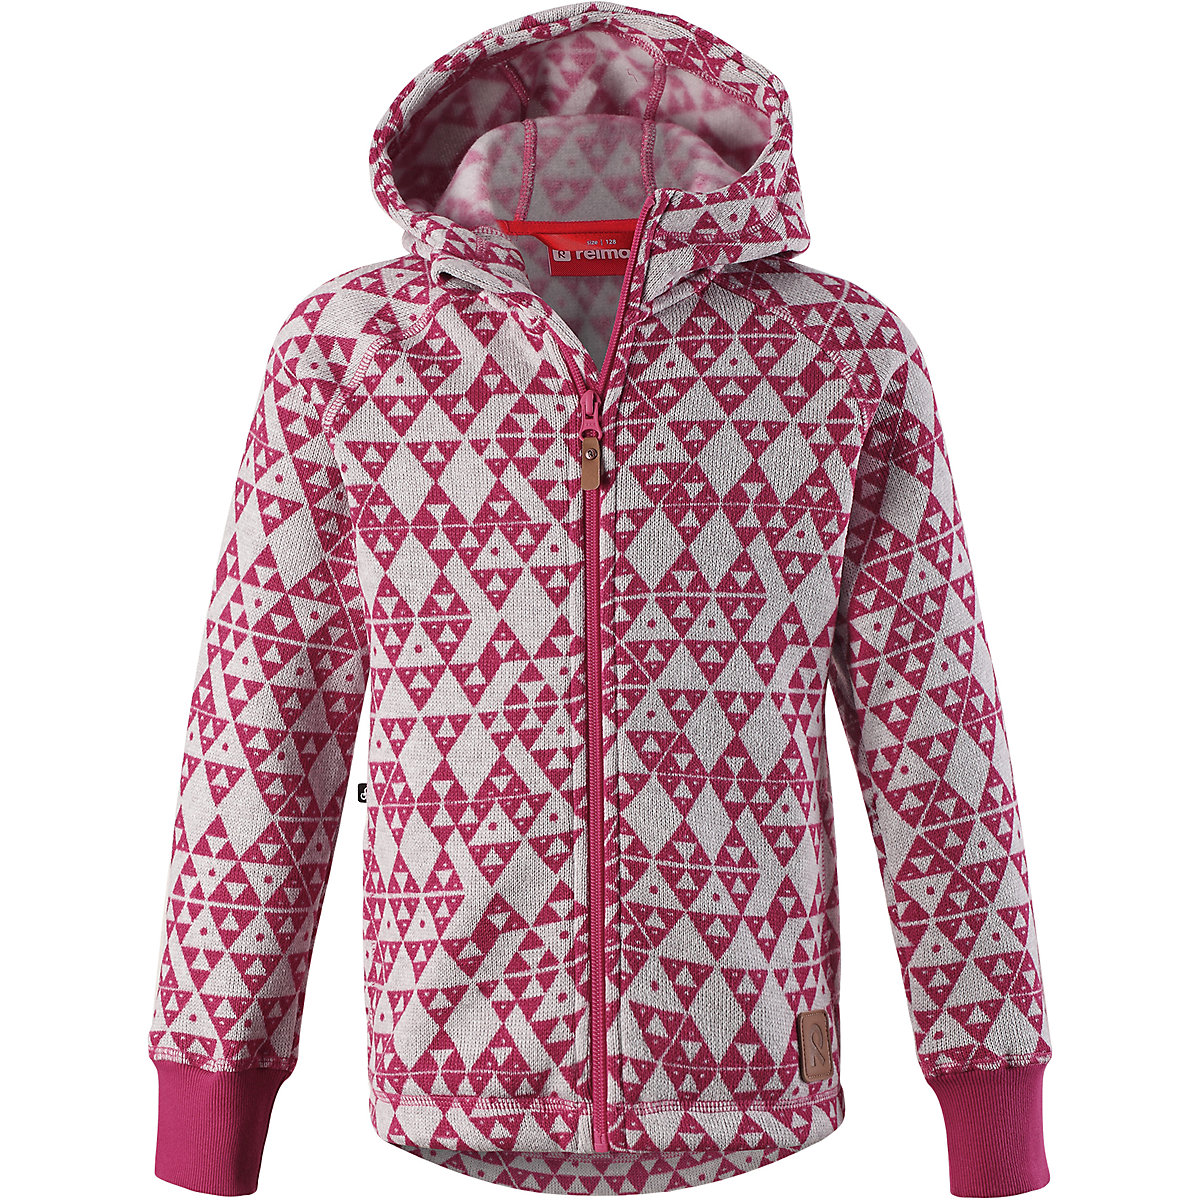 REIMA Sweaters 8689394 For girls Polyester warm winter children clothing girl Suit jacket